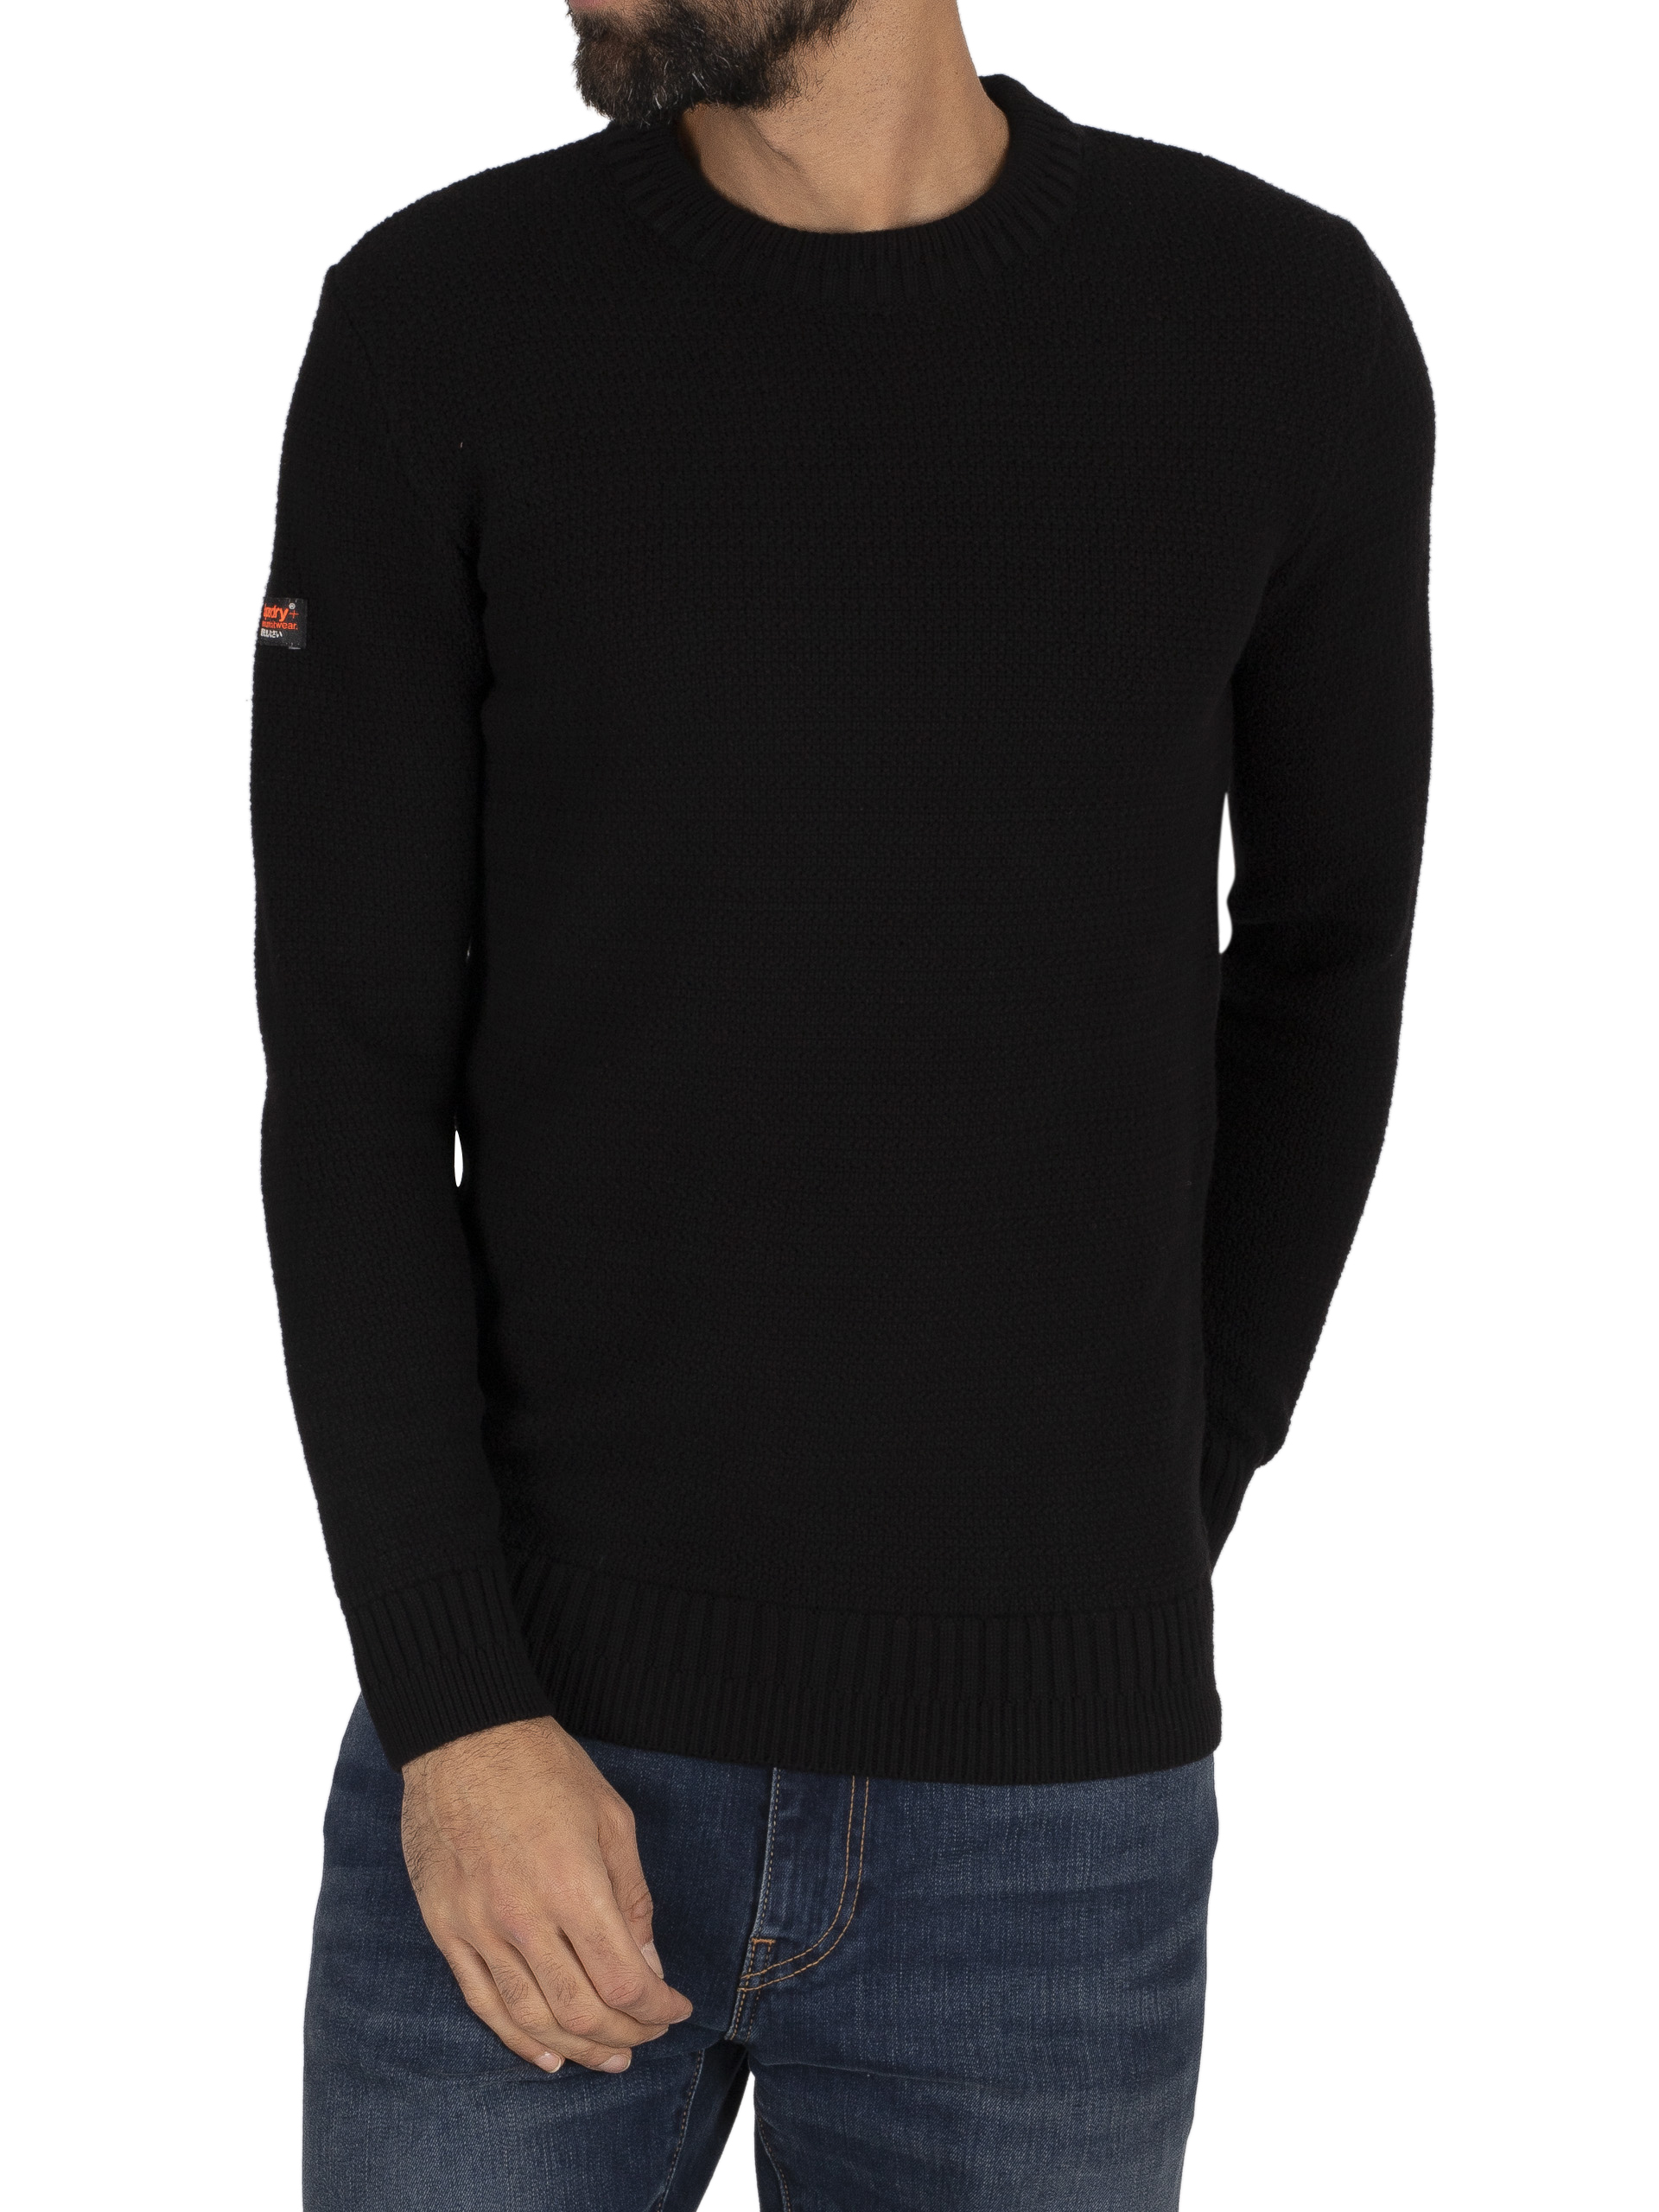 Superdry Keystone Crew Knit - Black